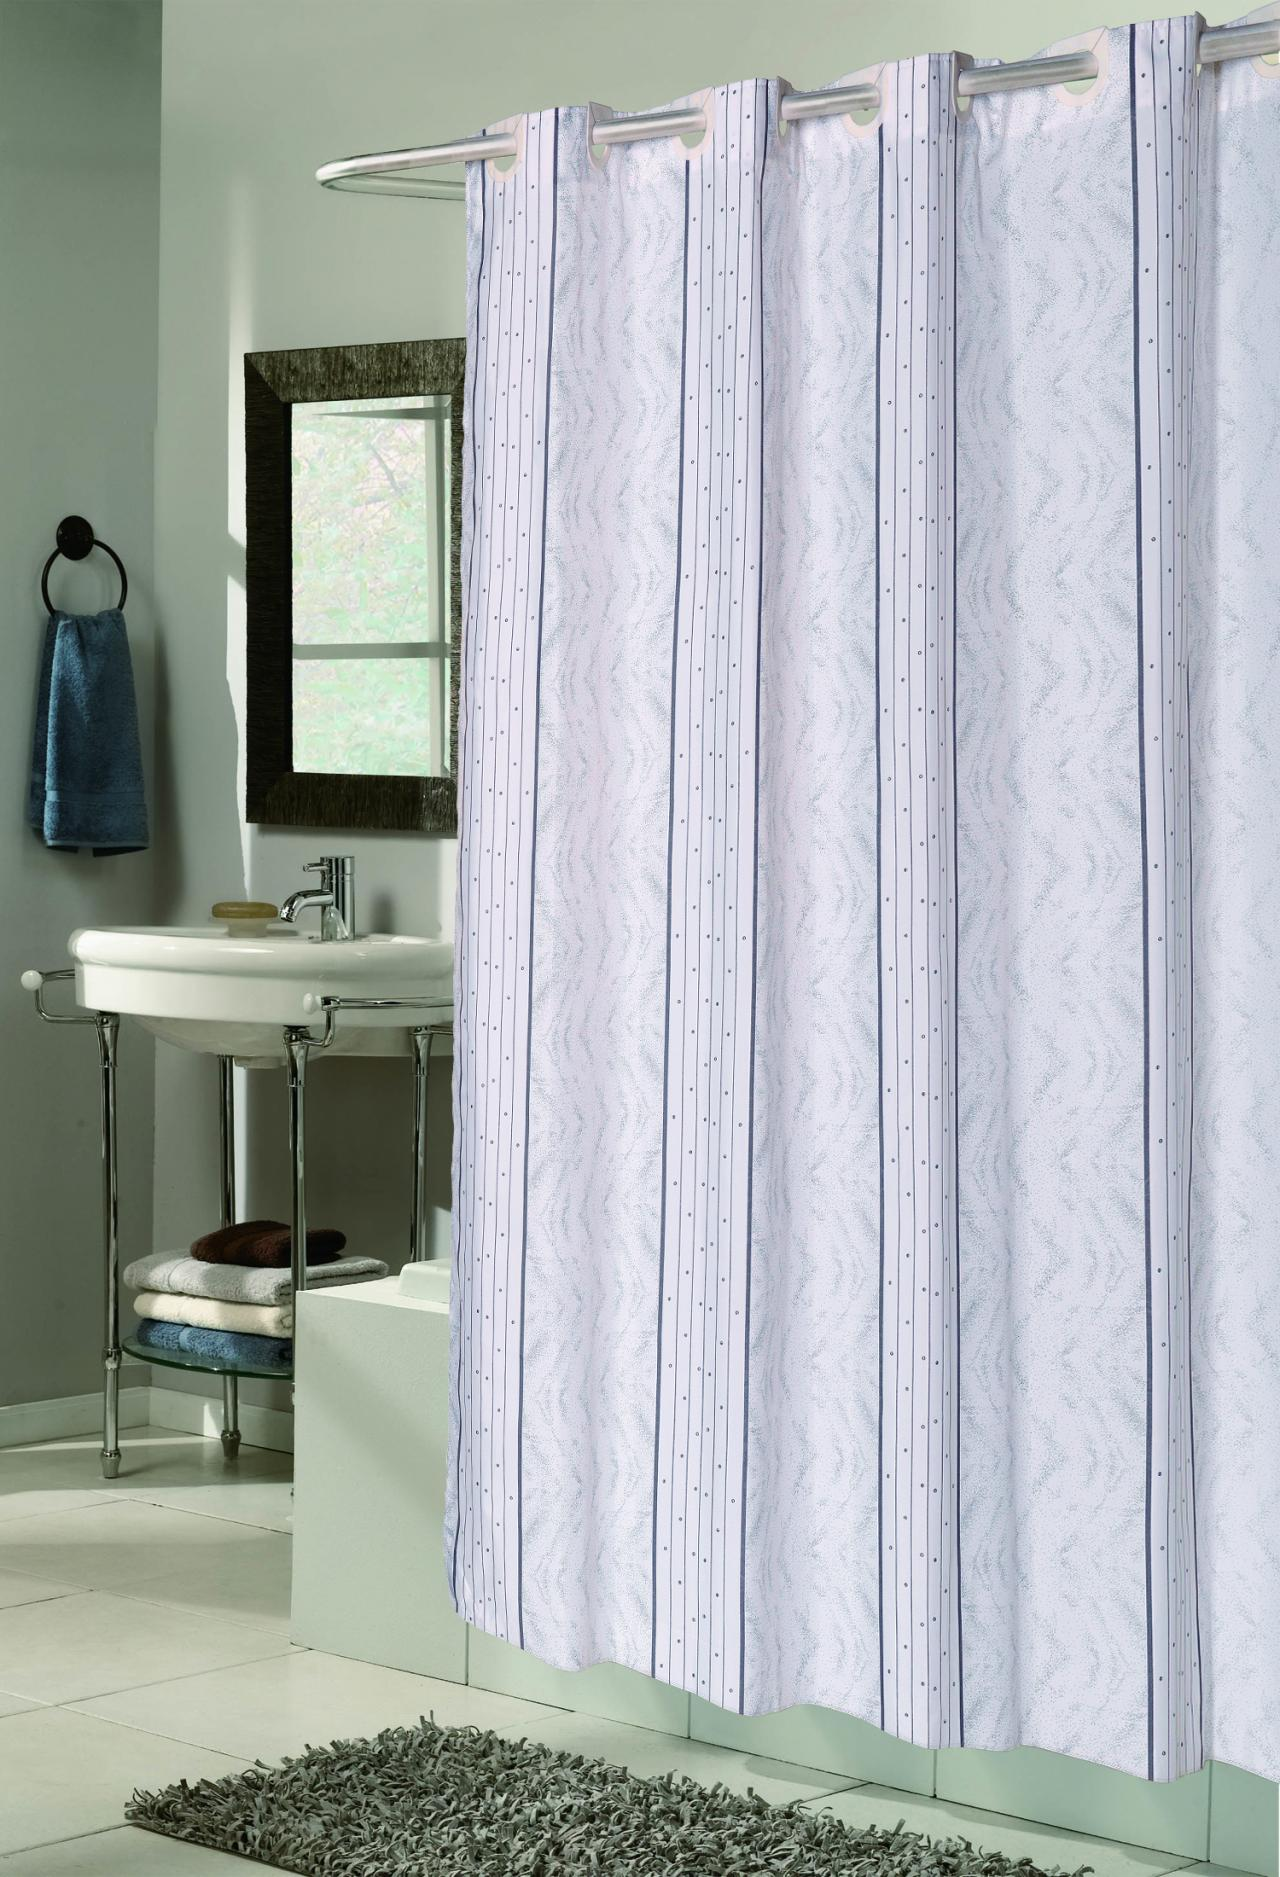 country is peva curtain easter size fabric large colored x cotton wide cream inch pvc flamgo gray weave long how length liner ft and white clear vtage height black blue better shower extra curtains uk gardens homes of waffle